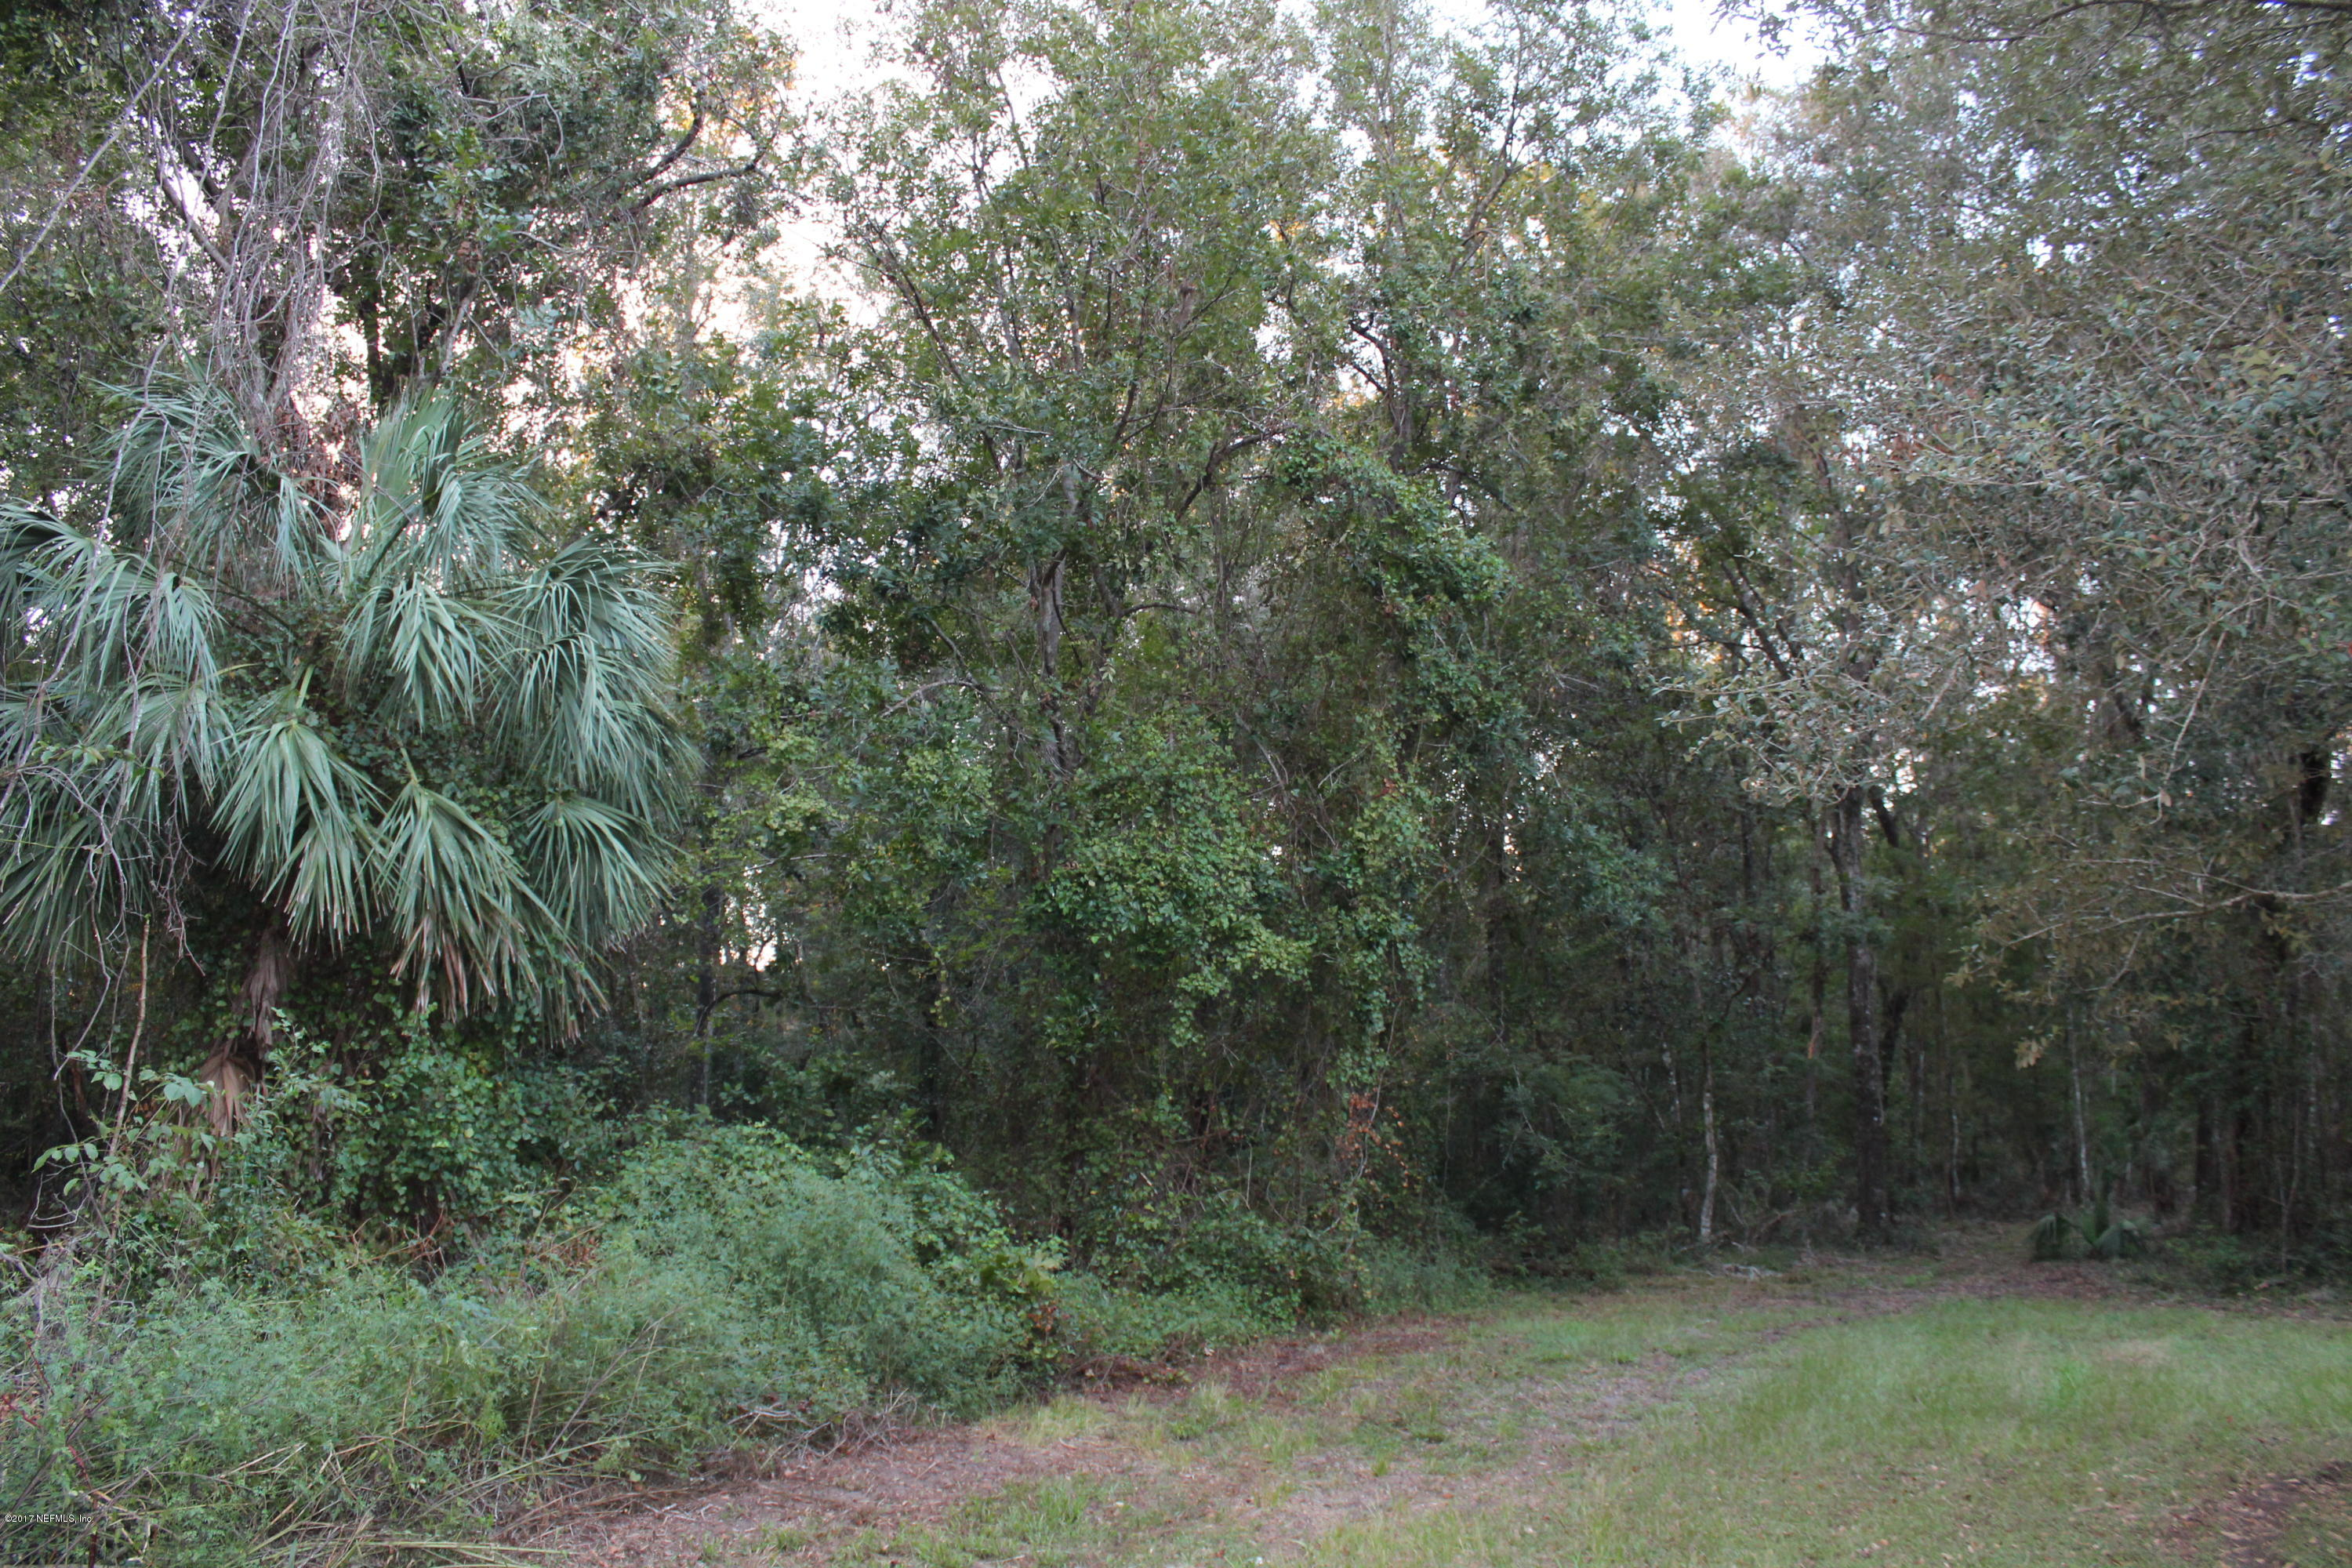 0 DOGWOOD, FLORAHOME, FLORIDA 32140, ,Vacant land,For sale,DOGWOOD,902268